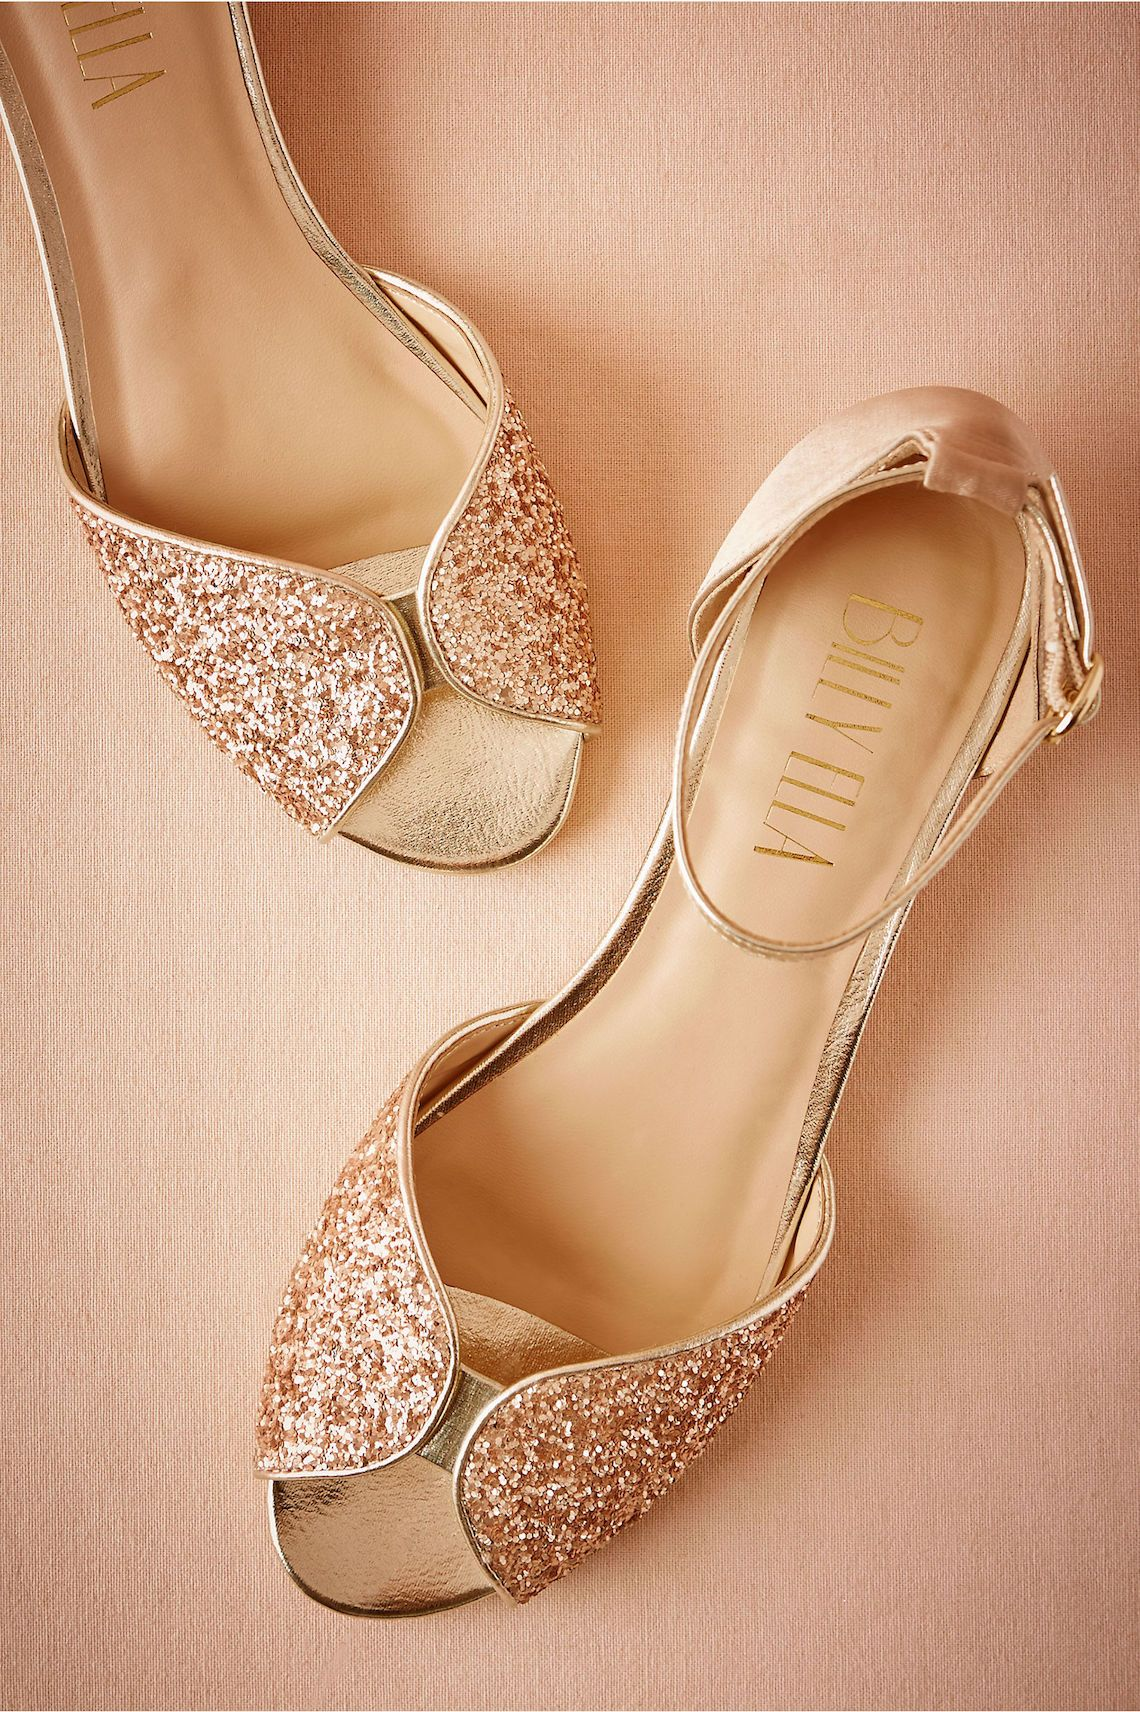 32a6a186dee9ca 10 Flat Wedding Shoes (That Are Just As Chic As Heels)